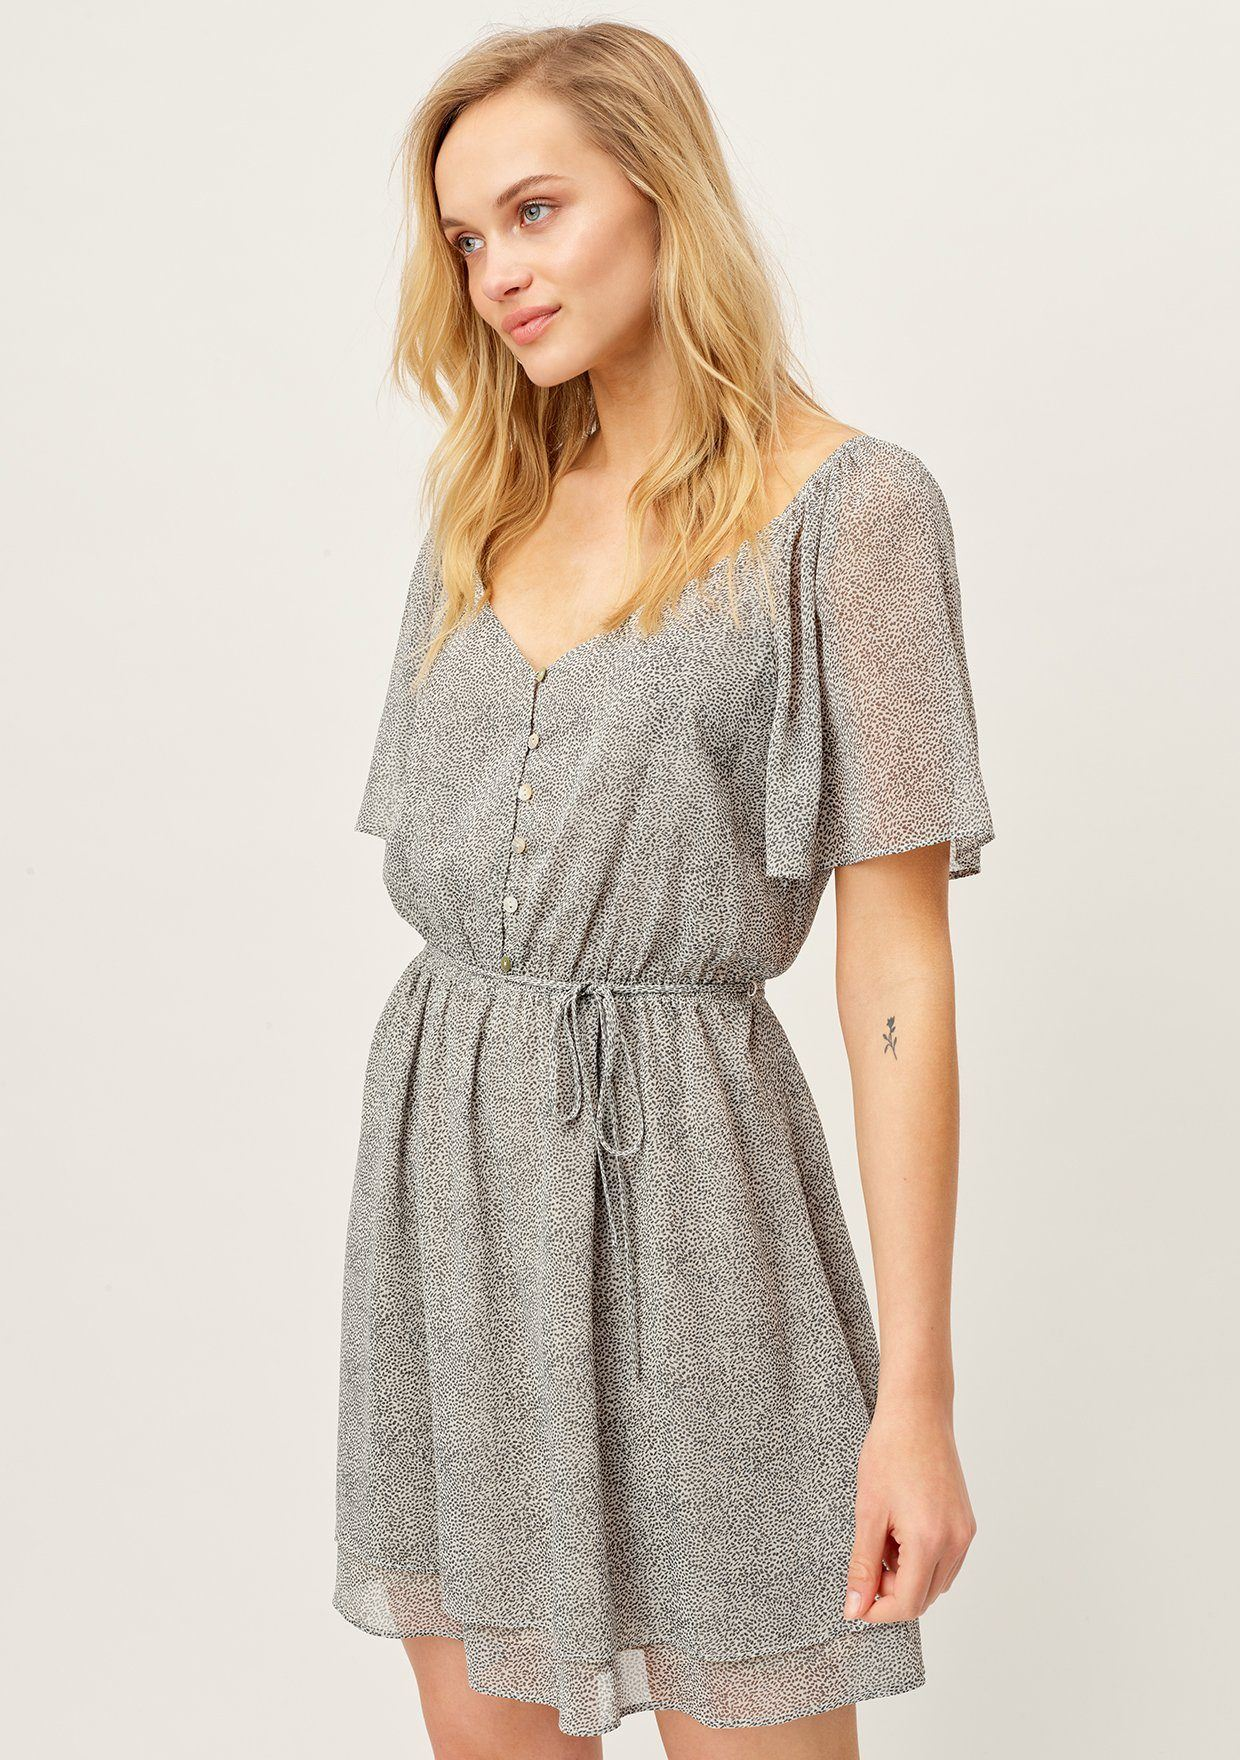 [Color: Bone/Charcoal] The work from home mini dress is professional on the top, and playful on the bottom. Cute button front top mini dress with slimming sheer kimono sleeves and waist defining spaghetti belt.